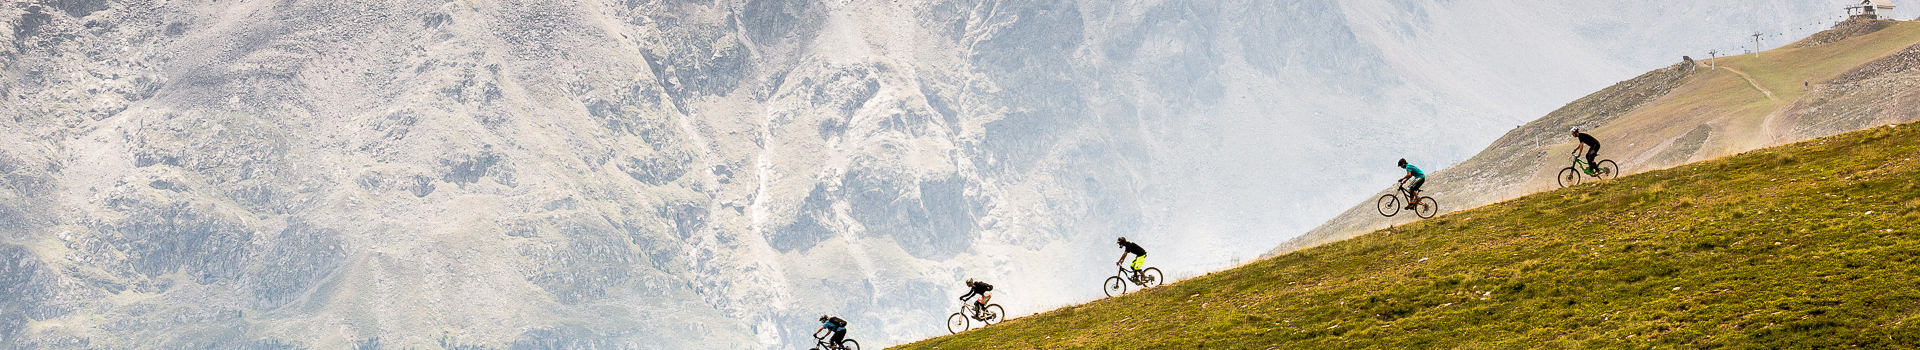 freeride soelden mountainbike